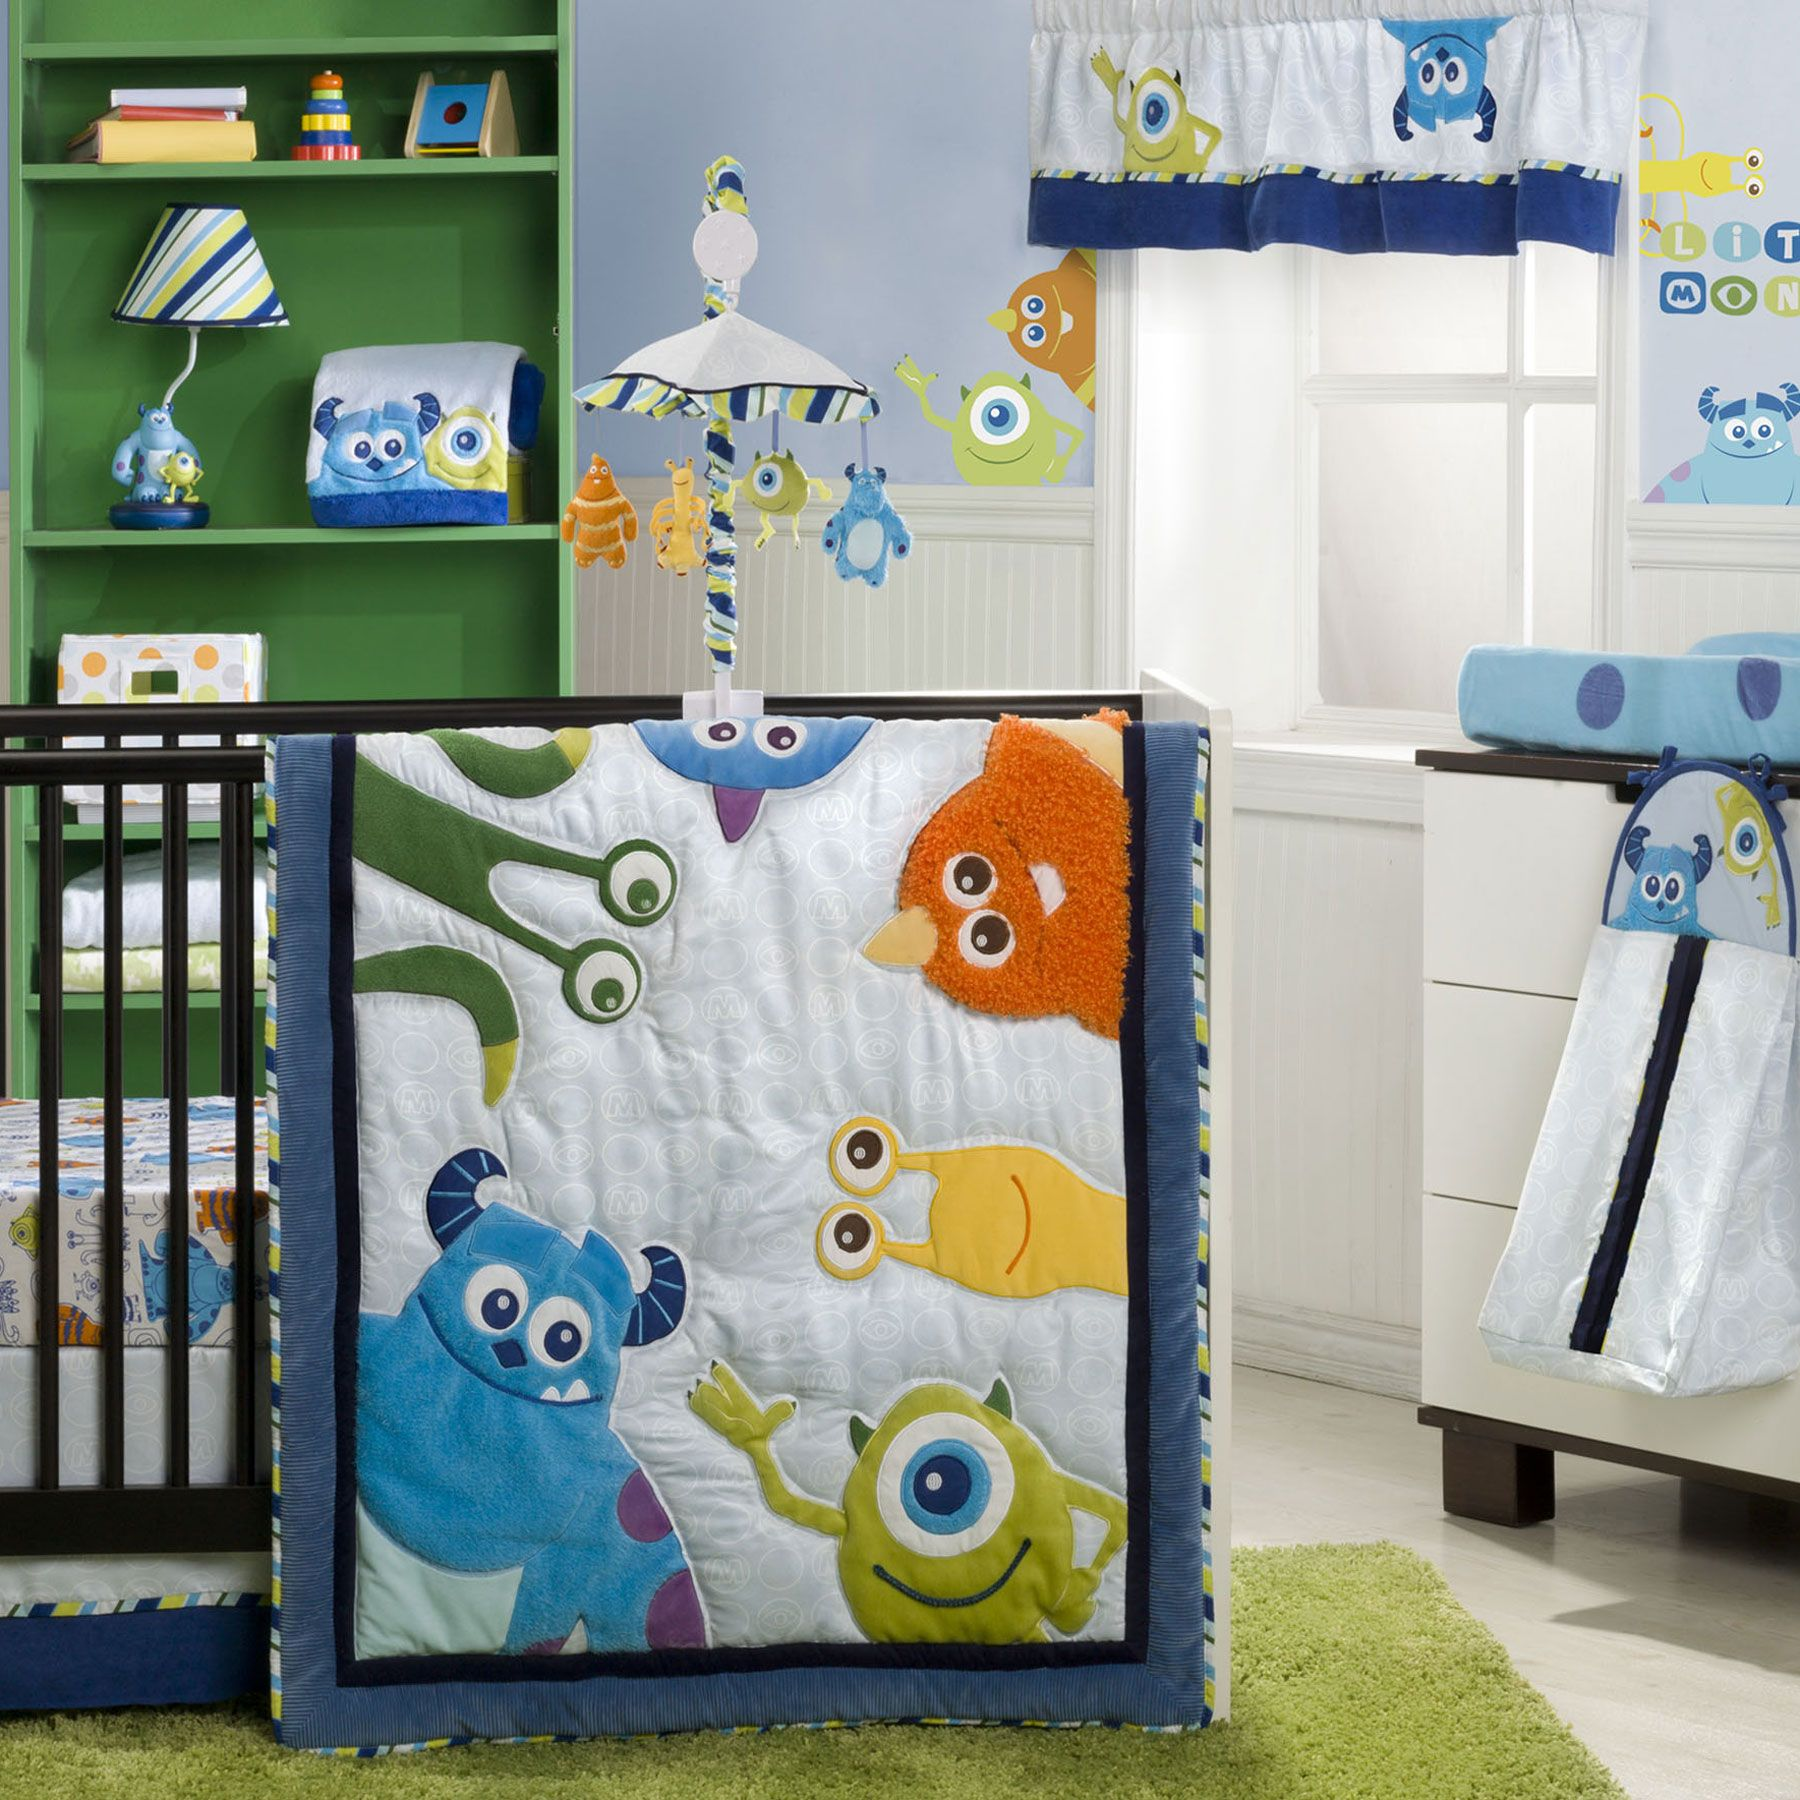 Monsters Inc Crib Bedding Set Kids Line Babies R Us I Know It Doesn T Fit The Nursery Theme But This Blanket Is So Adorable